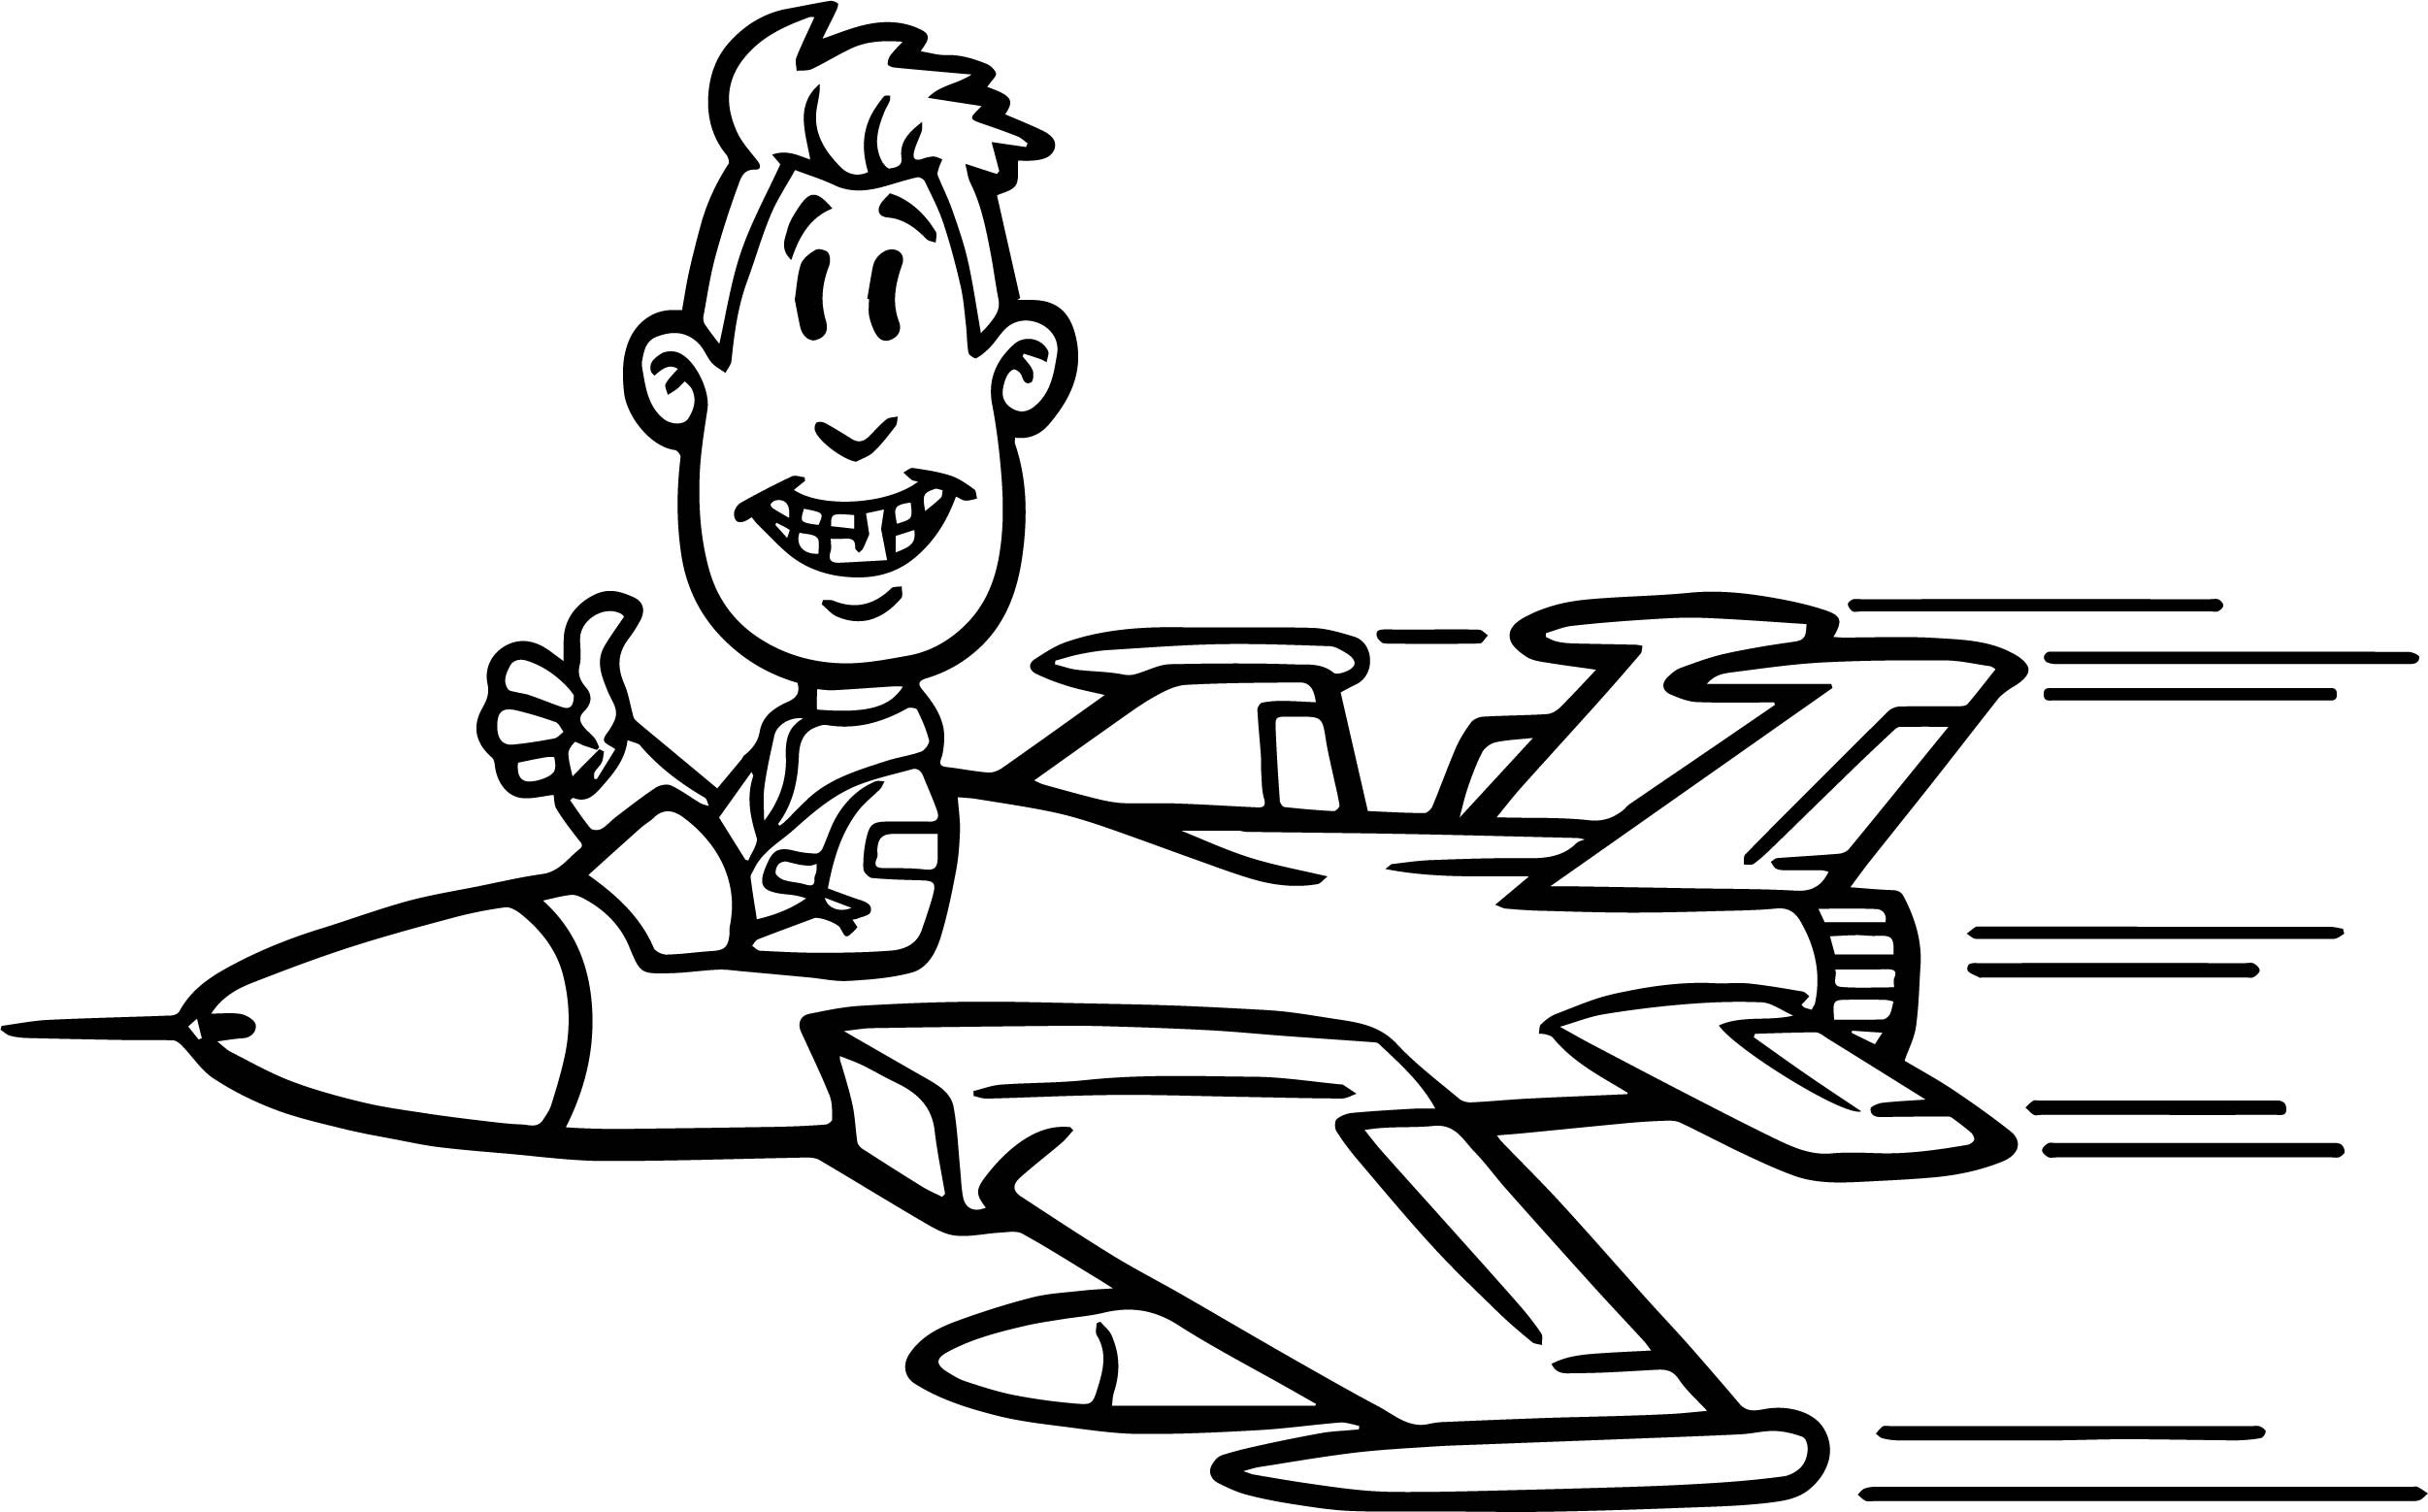 Pilot Coloring Pages For Kids  Pilot Man Plane Coloring Page